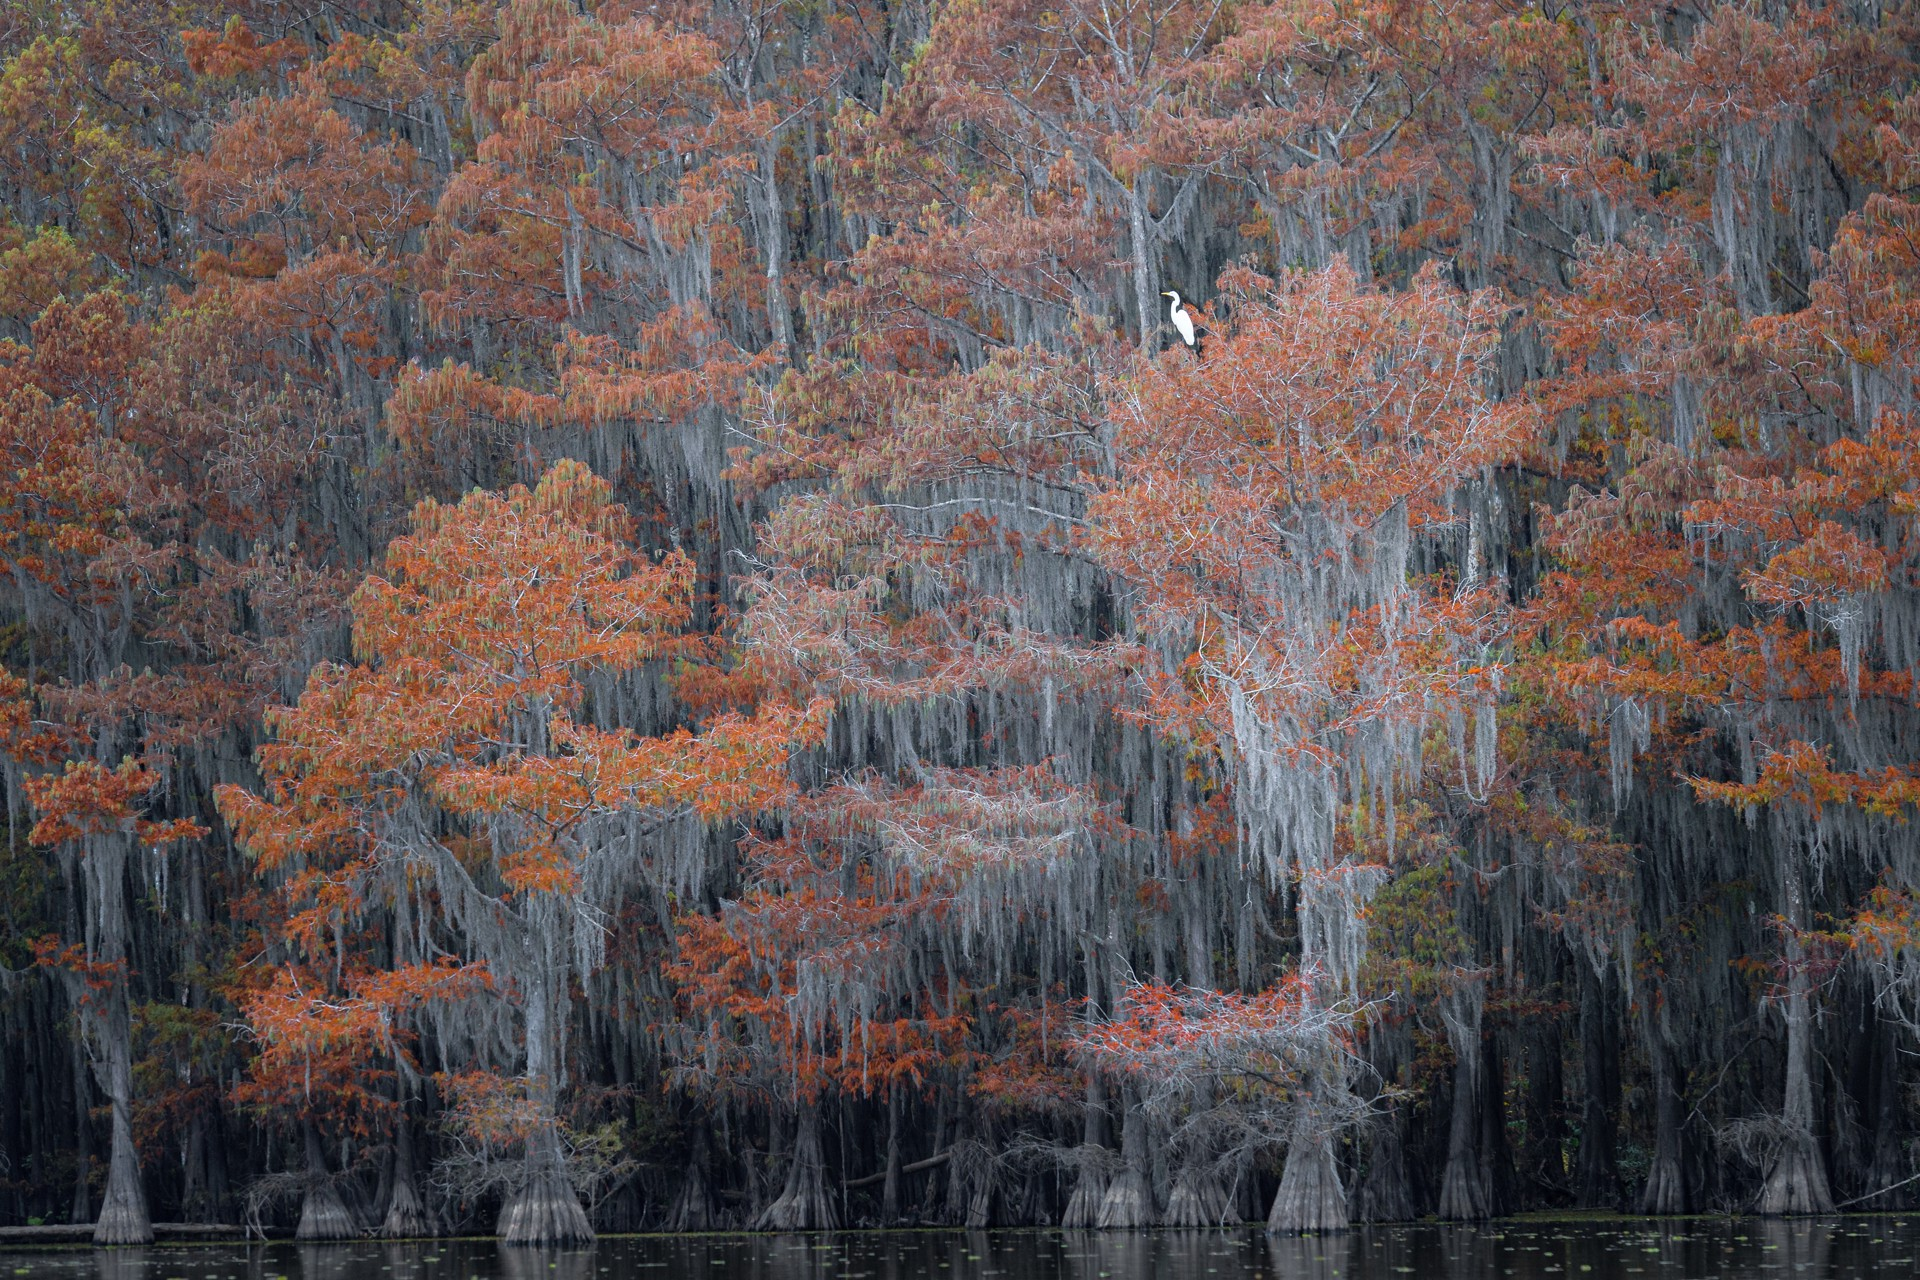 A lone egret emerges from a large forest in Louisiana.